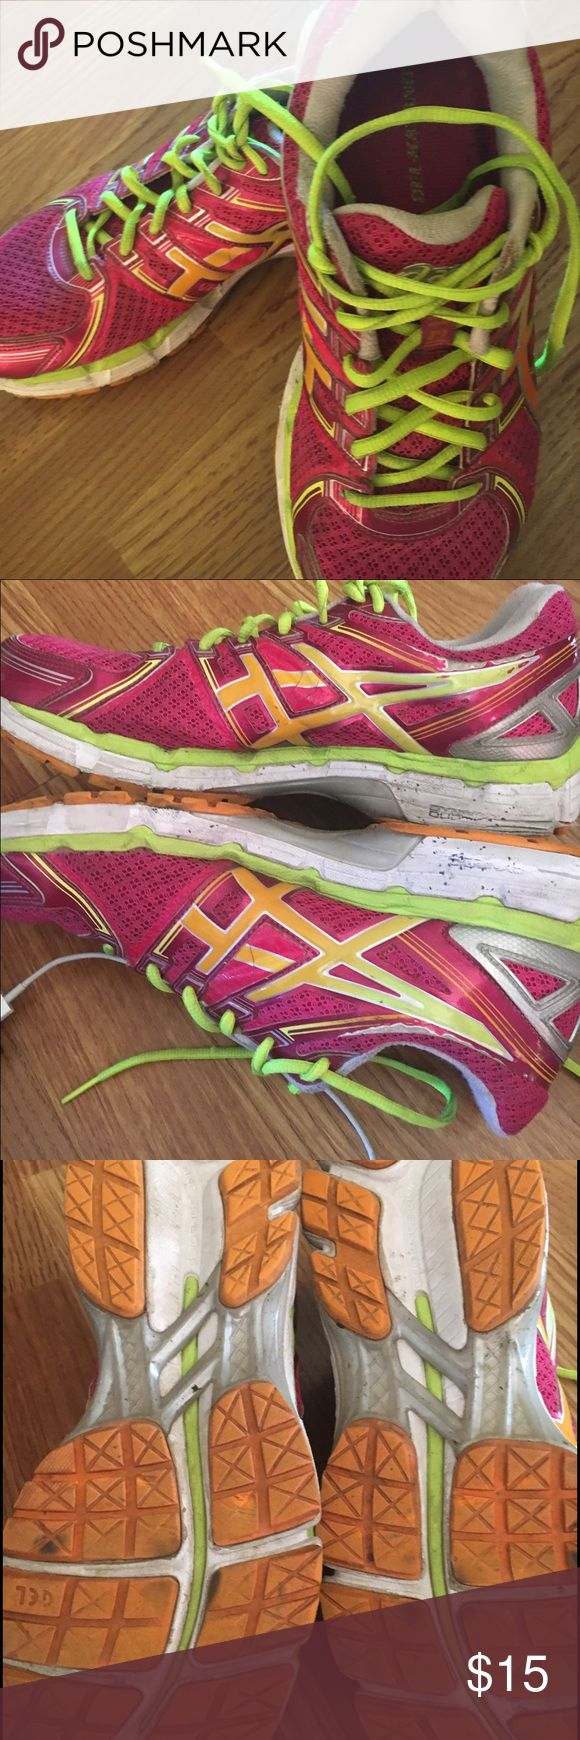 Asics  gel kayano 19 Pink orange and bright yellow. I used to train for a marathon still have lots of life.  Done wear on the soles as seen in pictures Asics Shoes Athletic Shoes